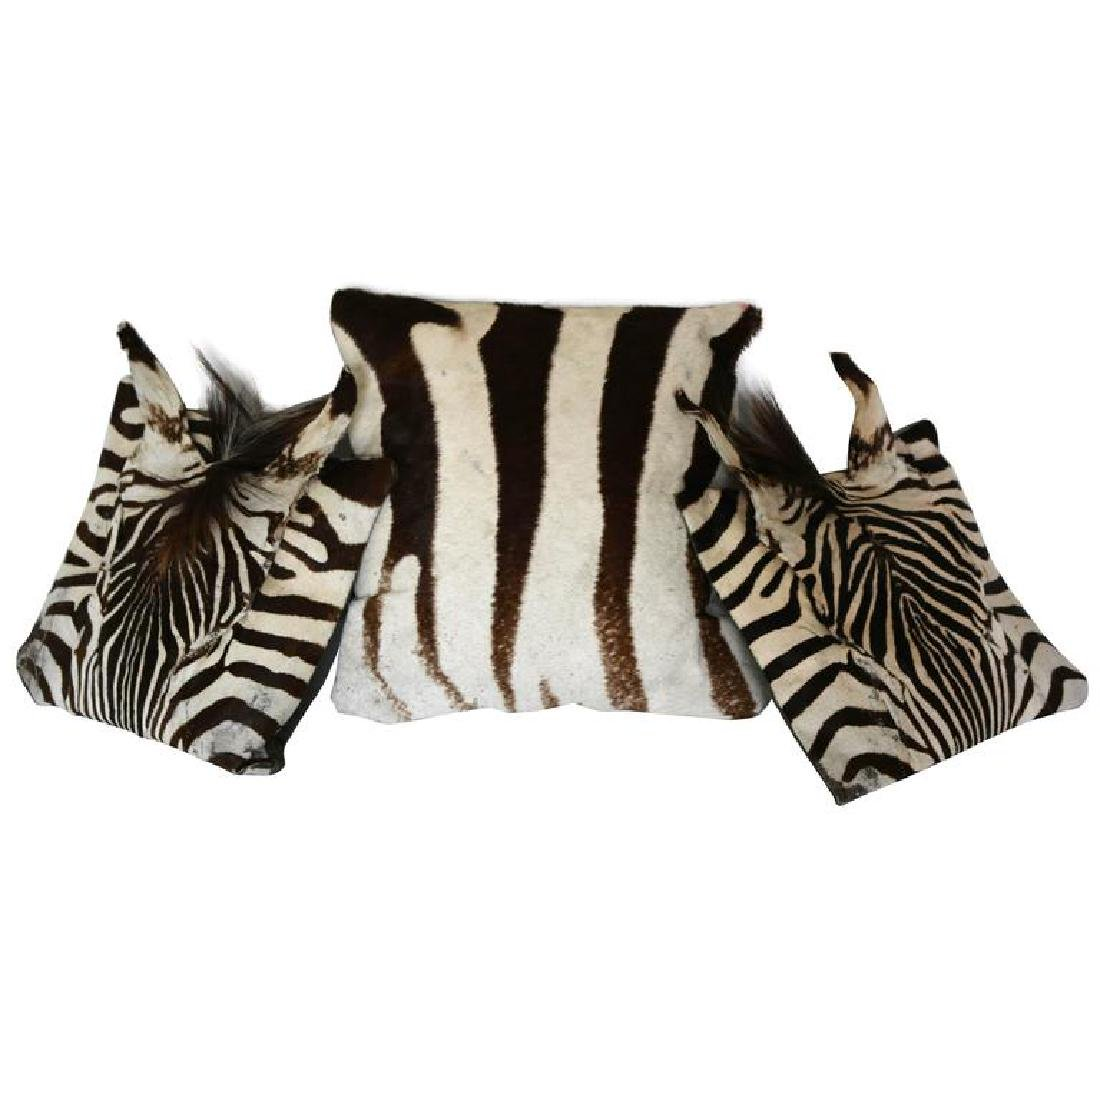 Set of Three Authentic Zebra Skin Pillows